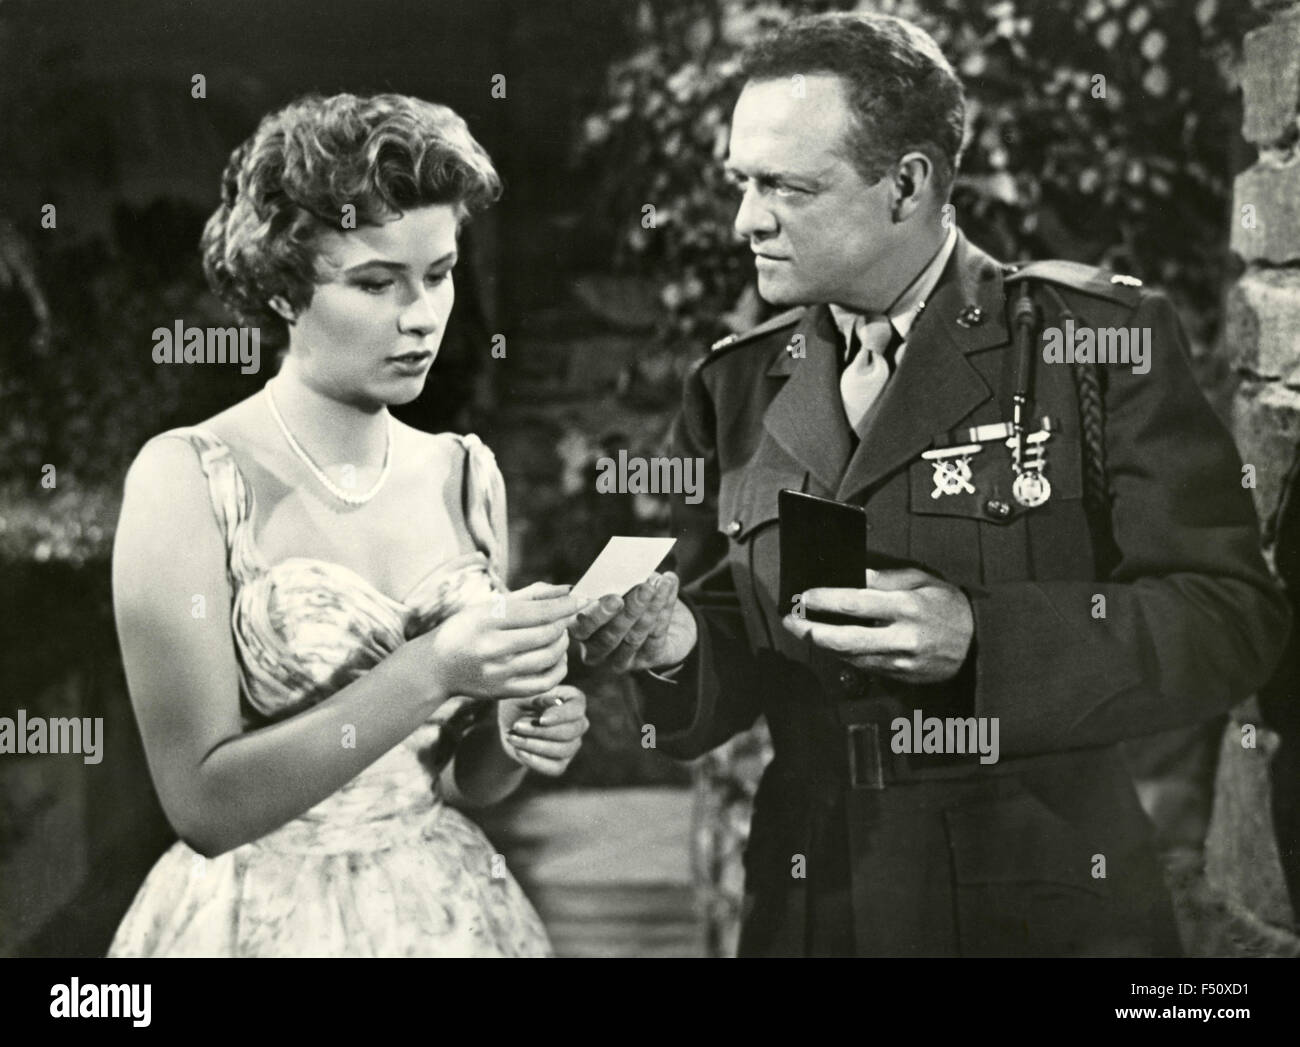 The actors Van Heflin and Mona Freeman in a scene from the movie 'Battle Cry', USA - Stock Image